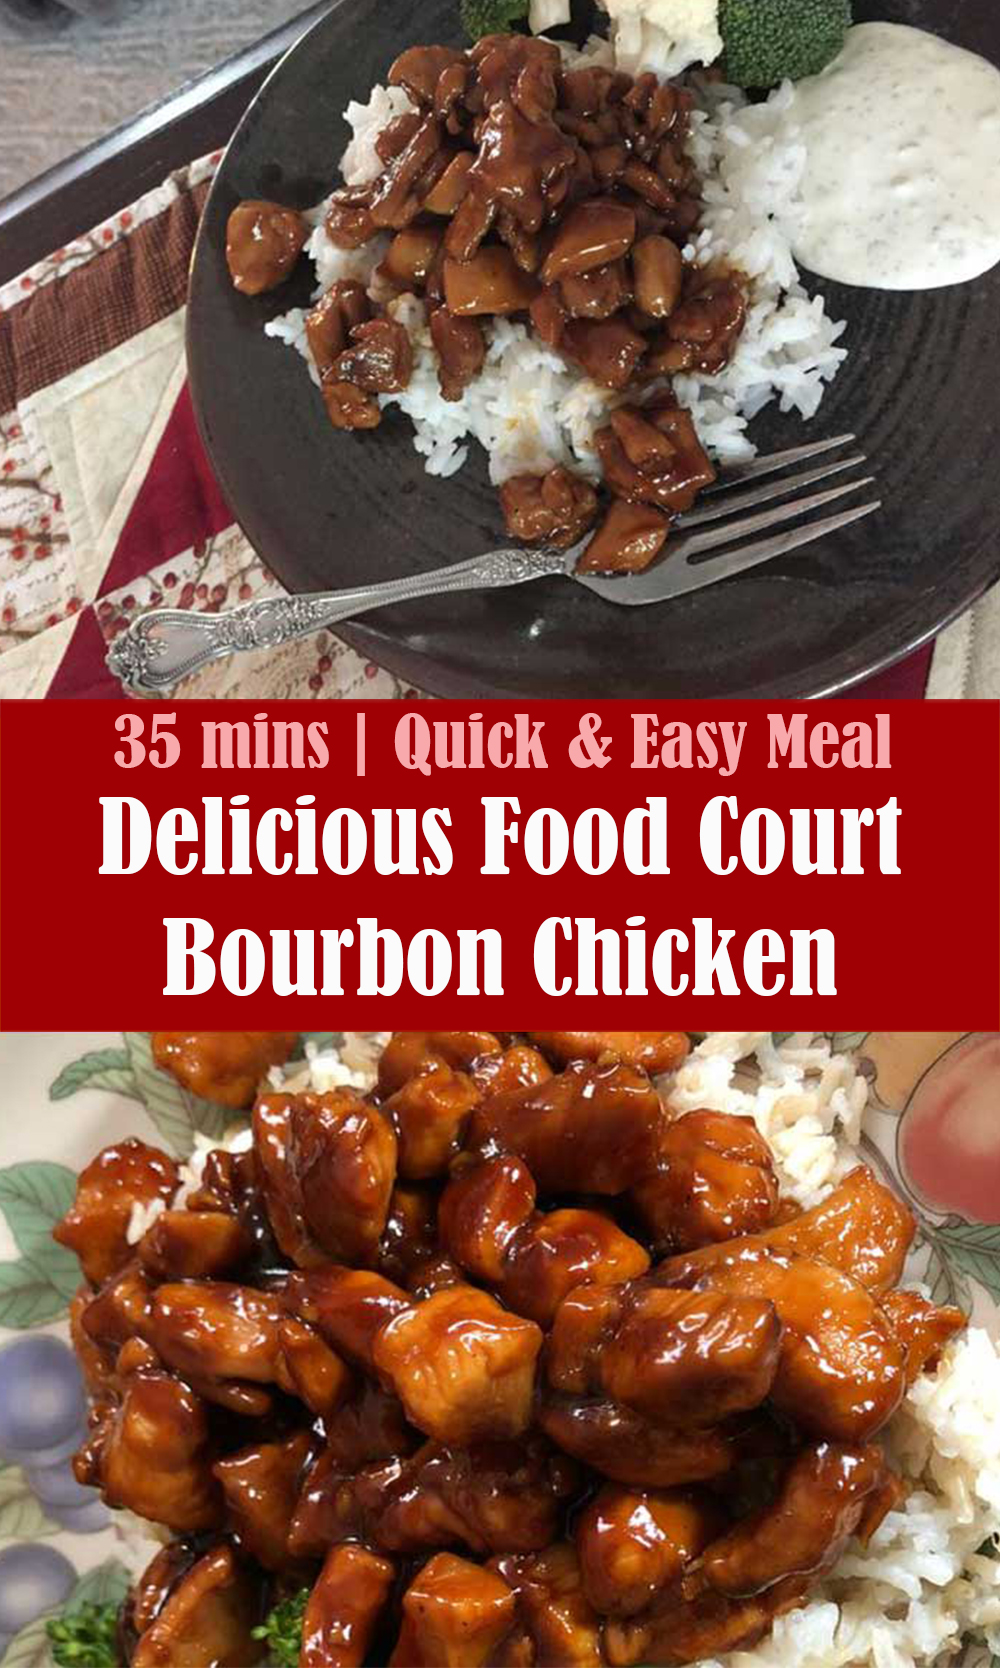 Quick and Easy Food Court Bourbon Chicken